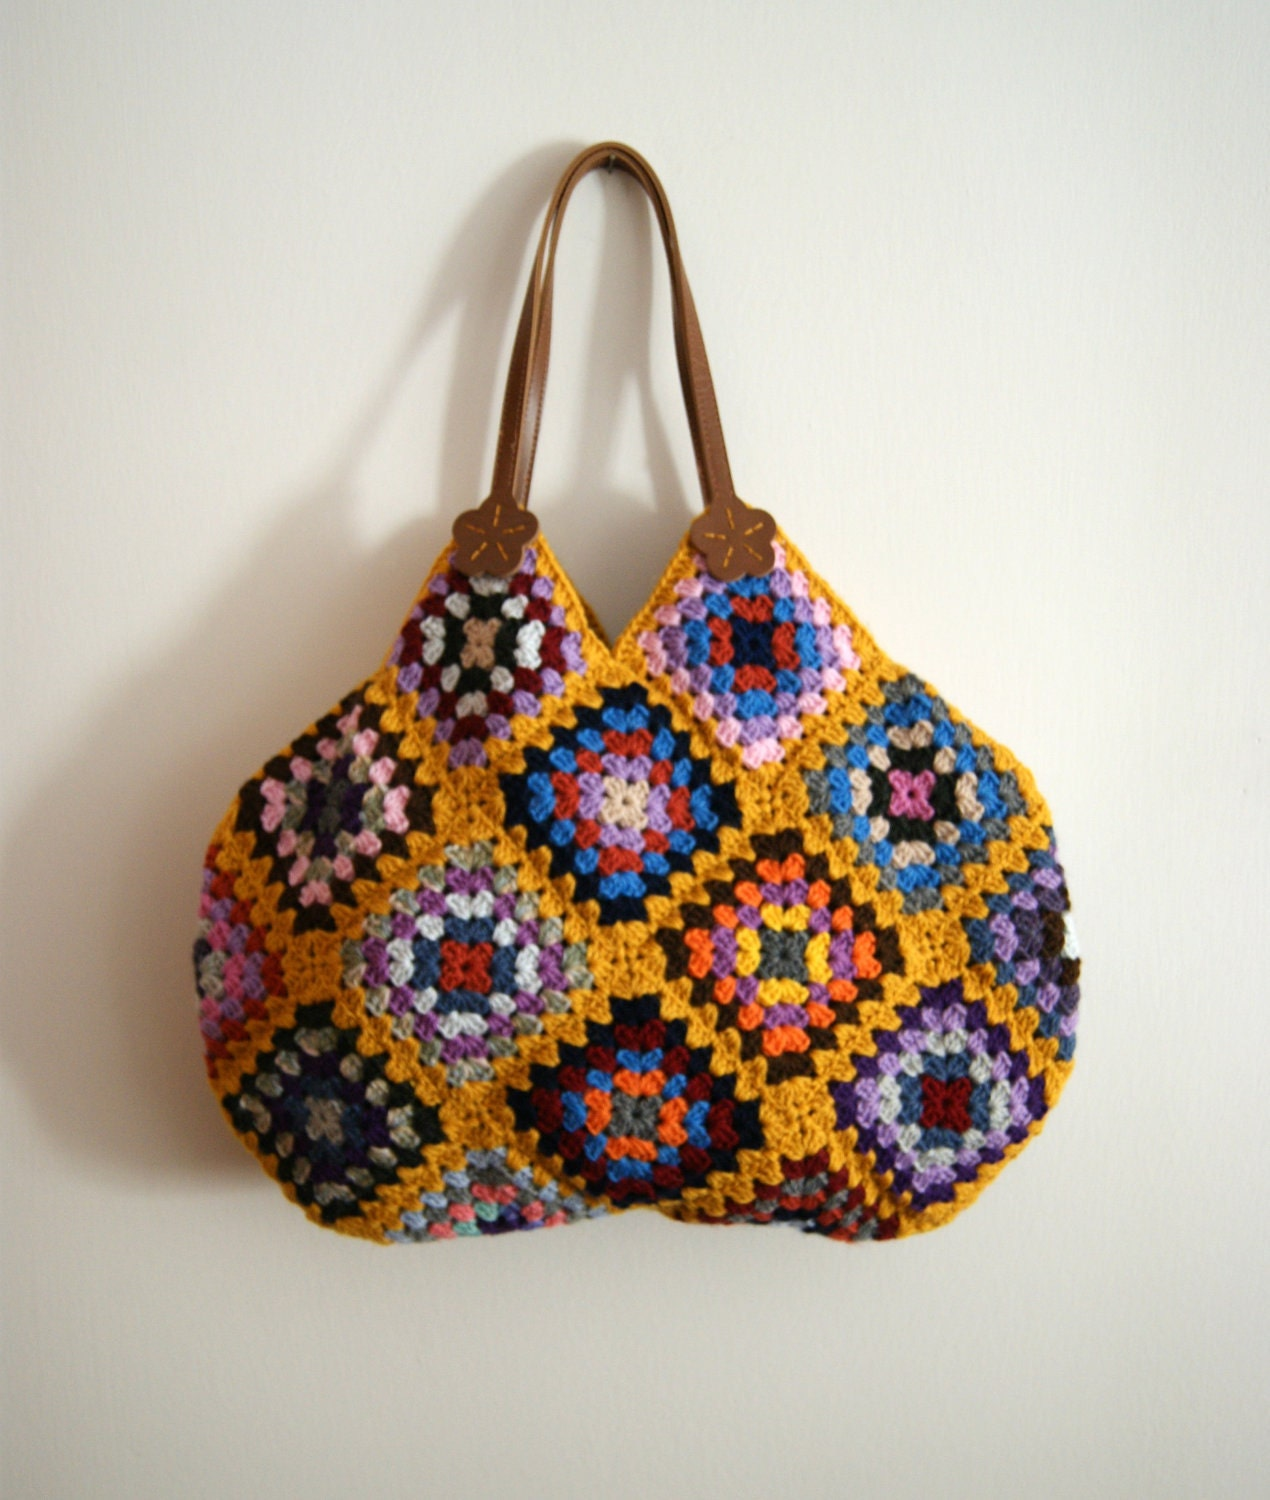 Crochet Bag Granny Square : Mustard Crochet granny square bag by knittingcate on Etsy